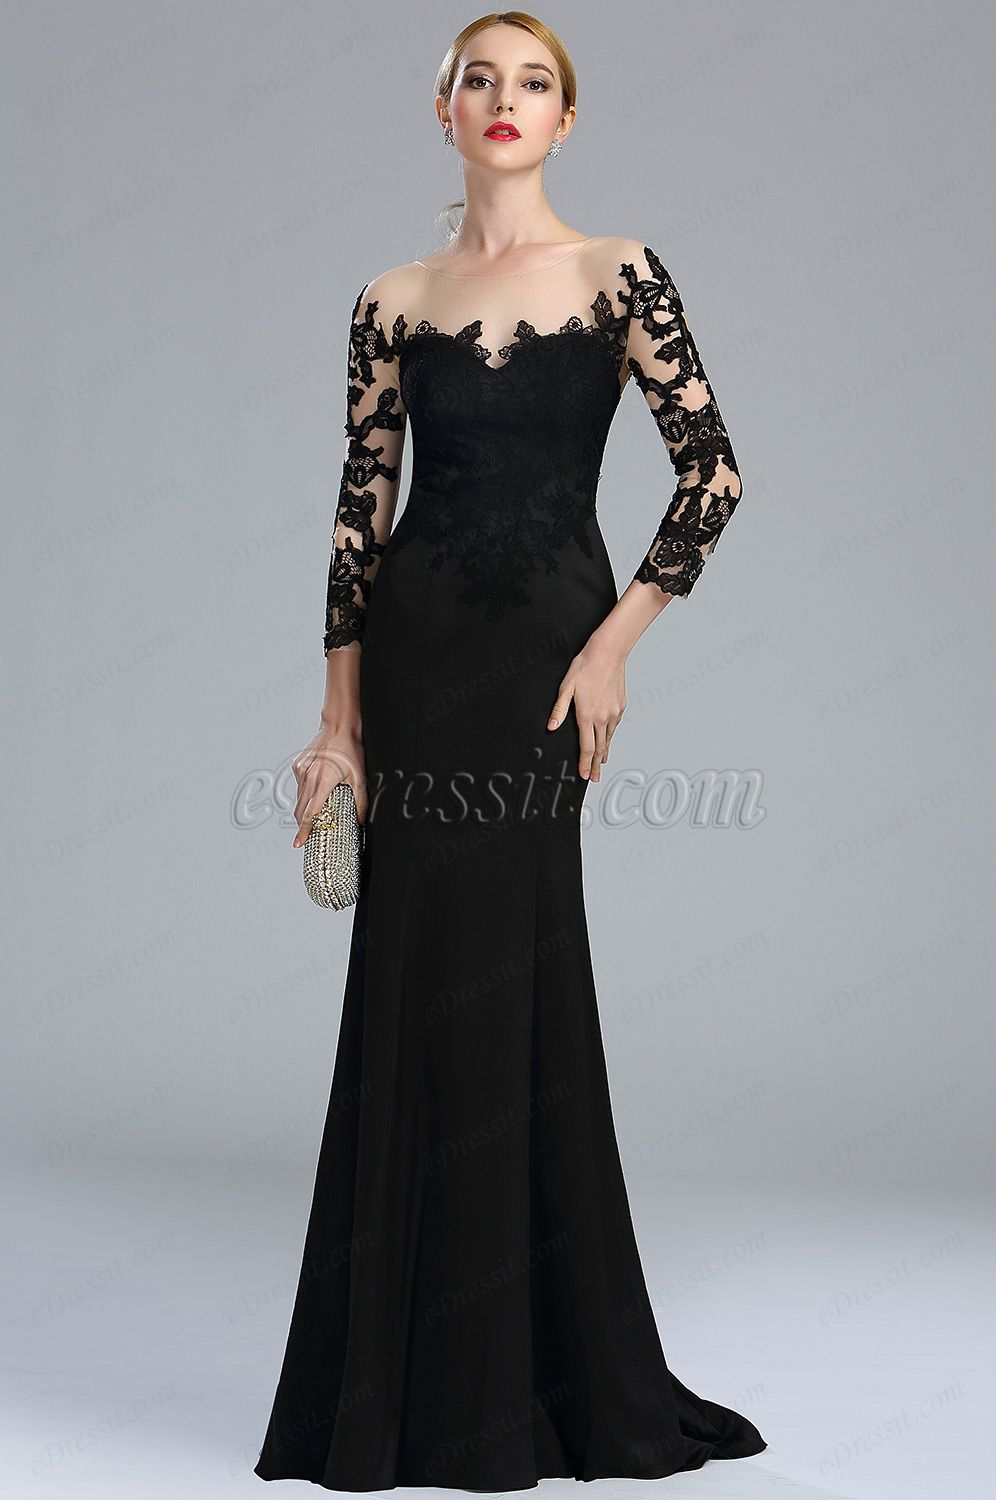 Black evening gowns dresses